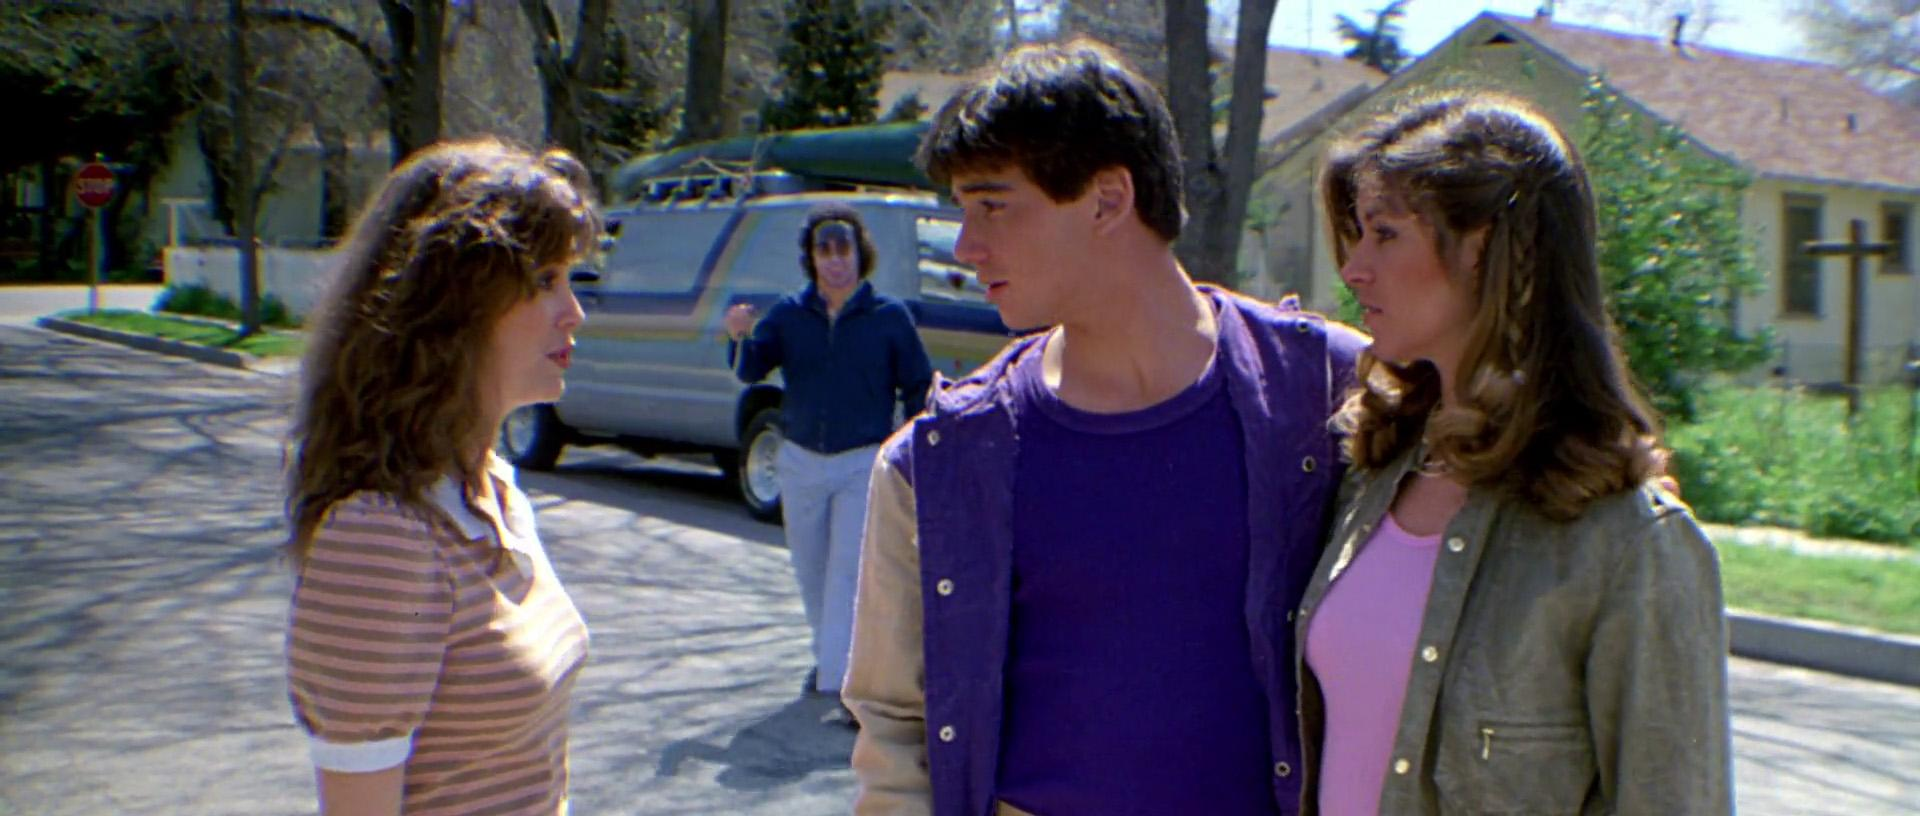 Dana Kimmell, Larry Zerner, Tracie Savage and Jeffrey Rogers in Friday the 13th Part III (1982)